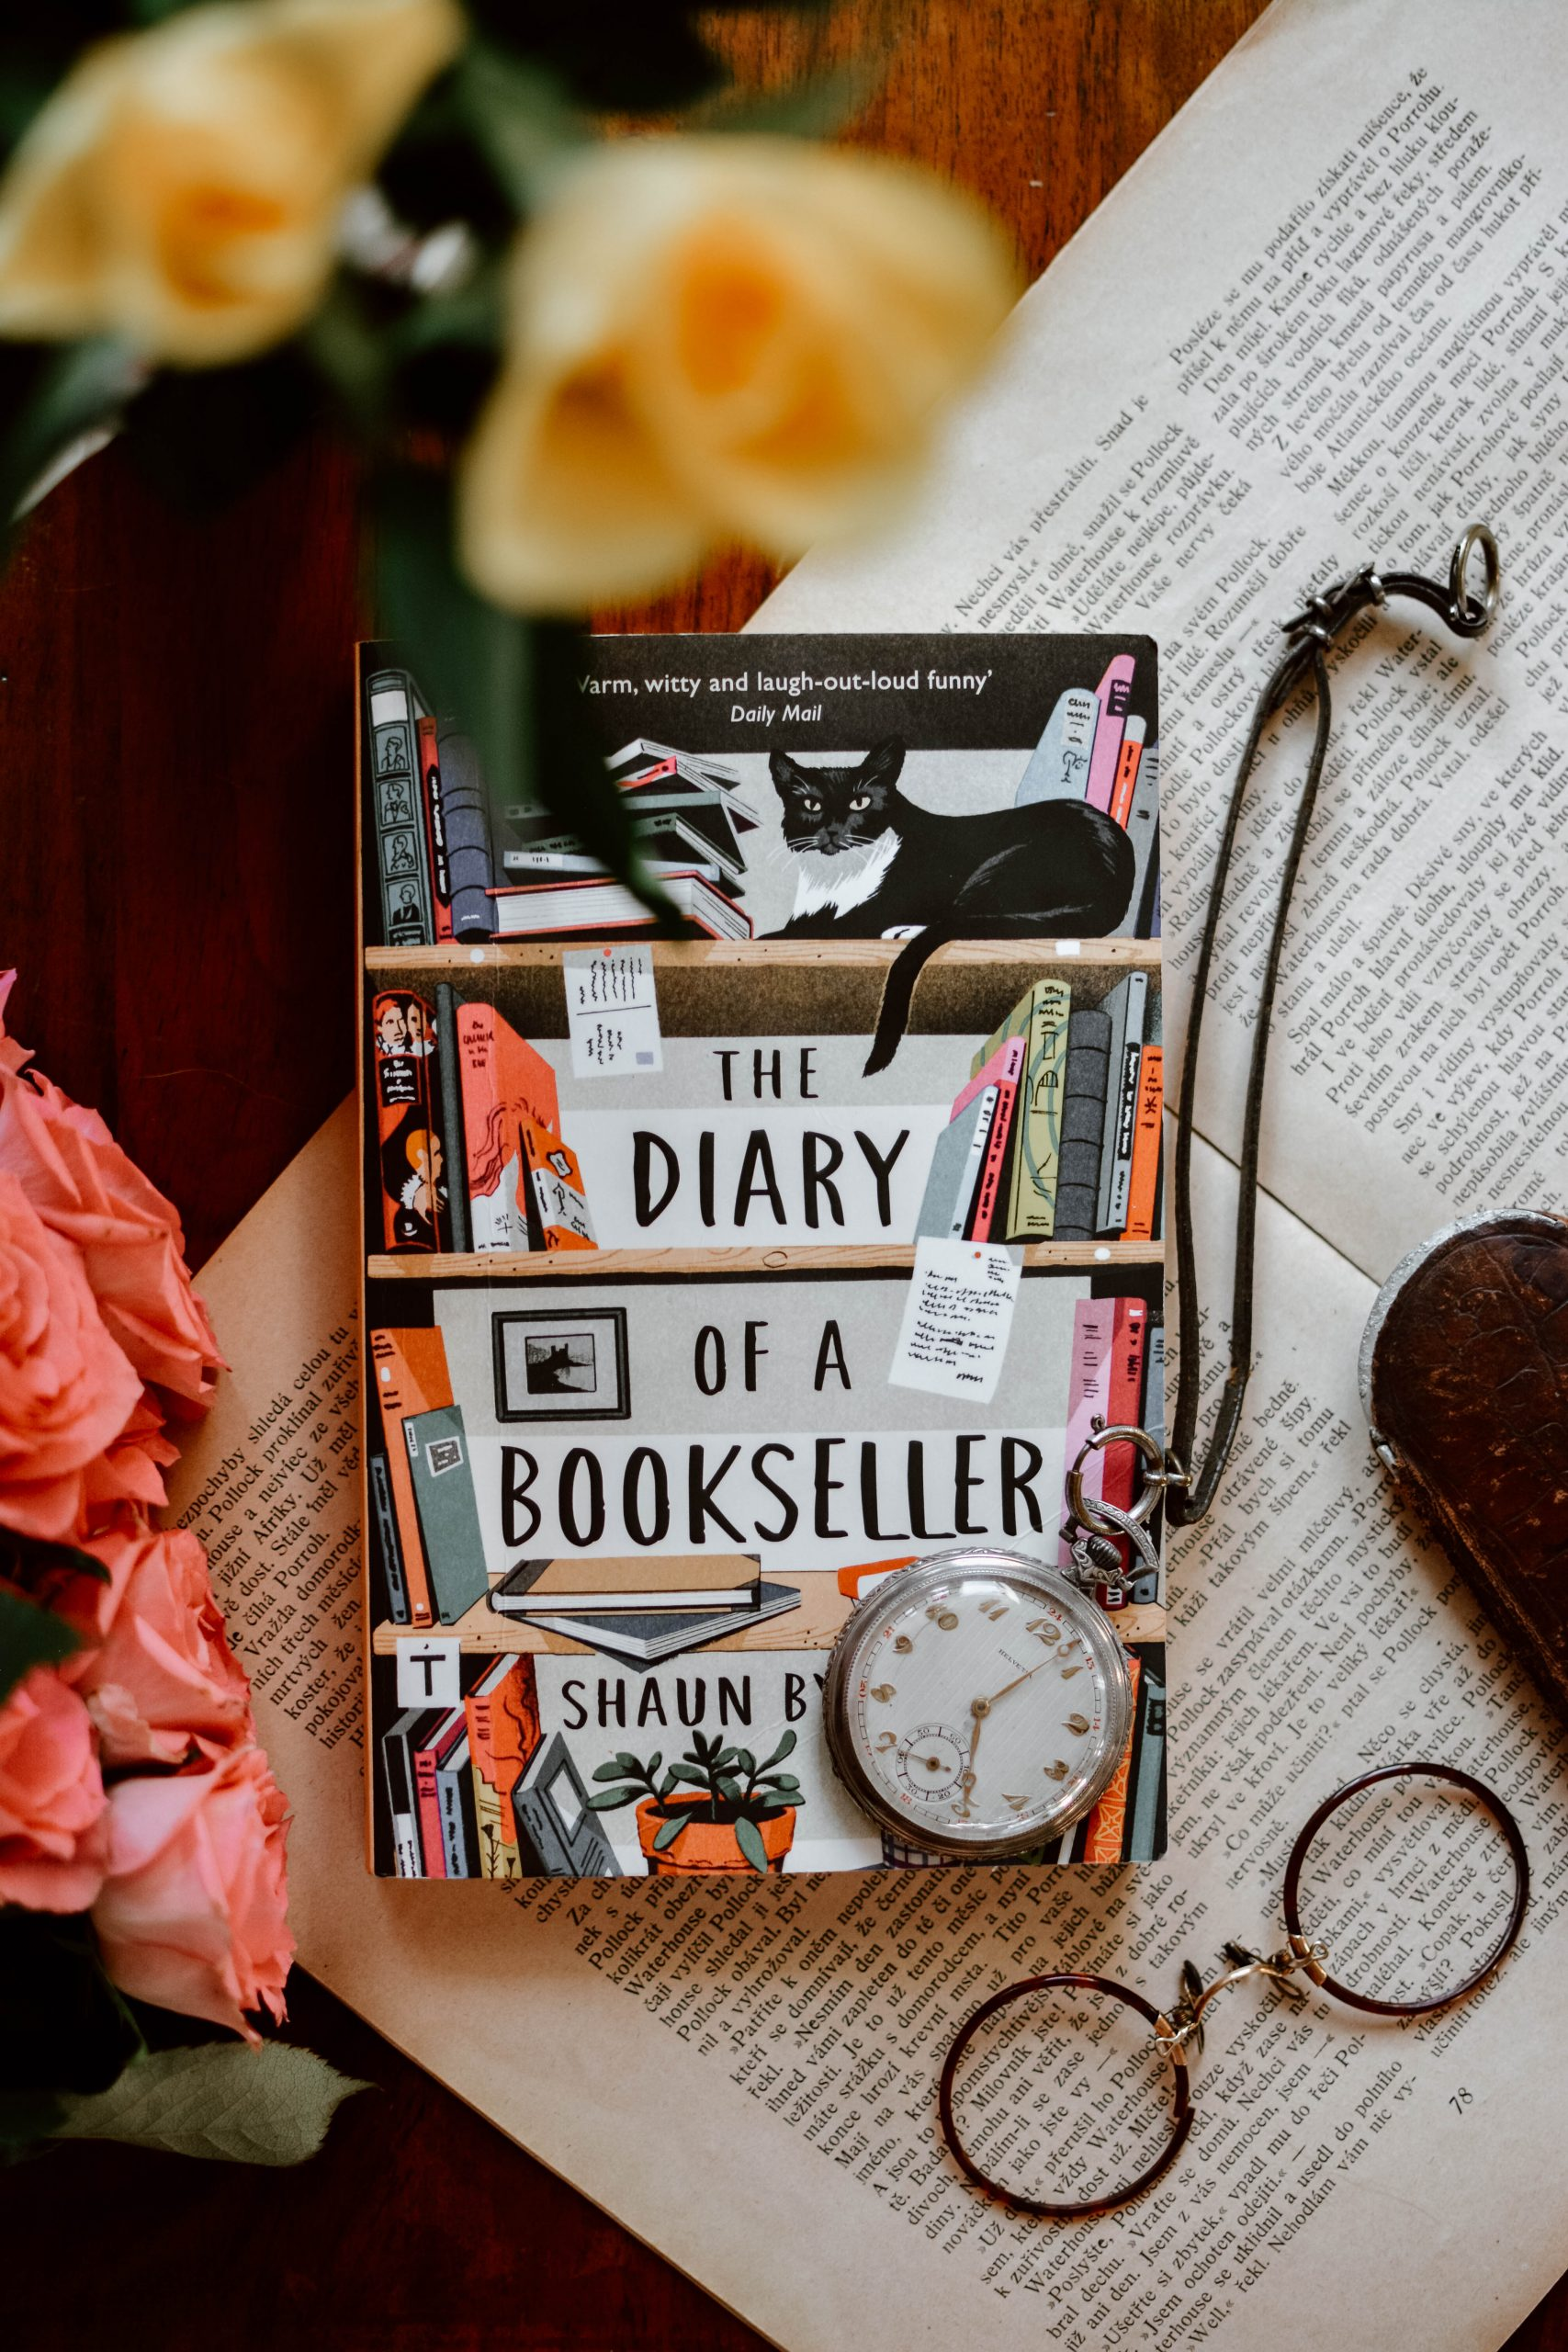 The Diary of a Bookseller by Shaun Bythell review